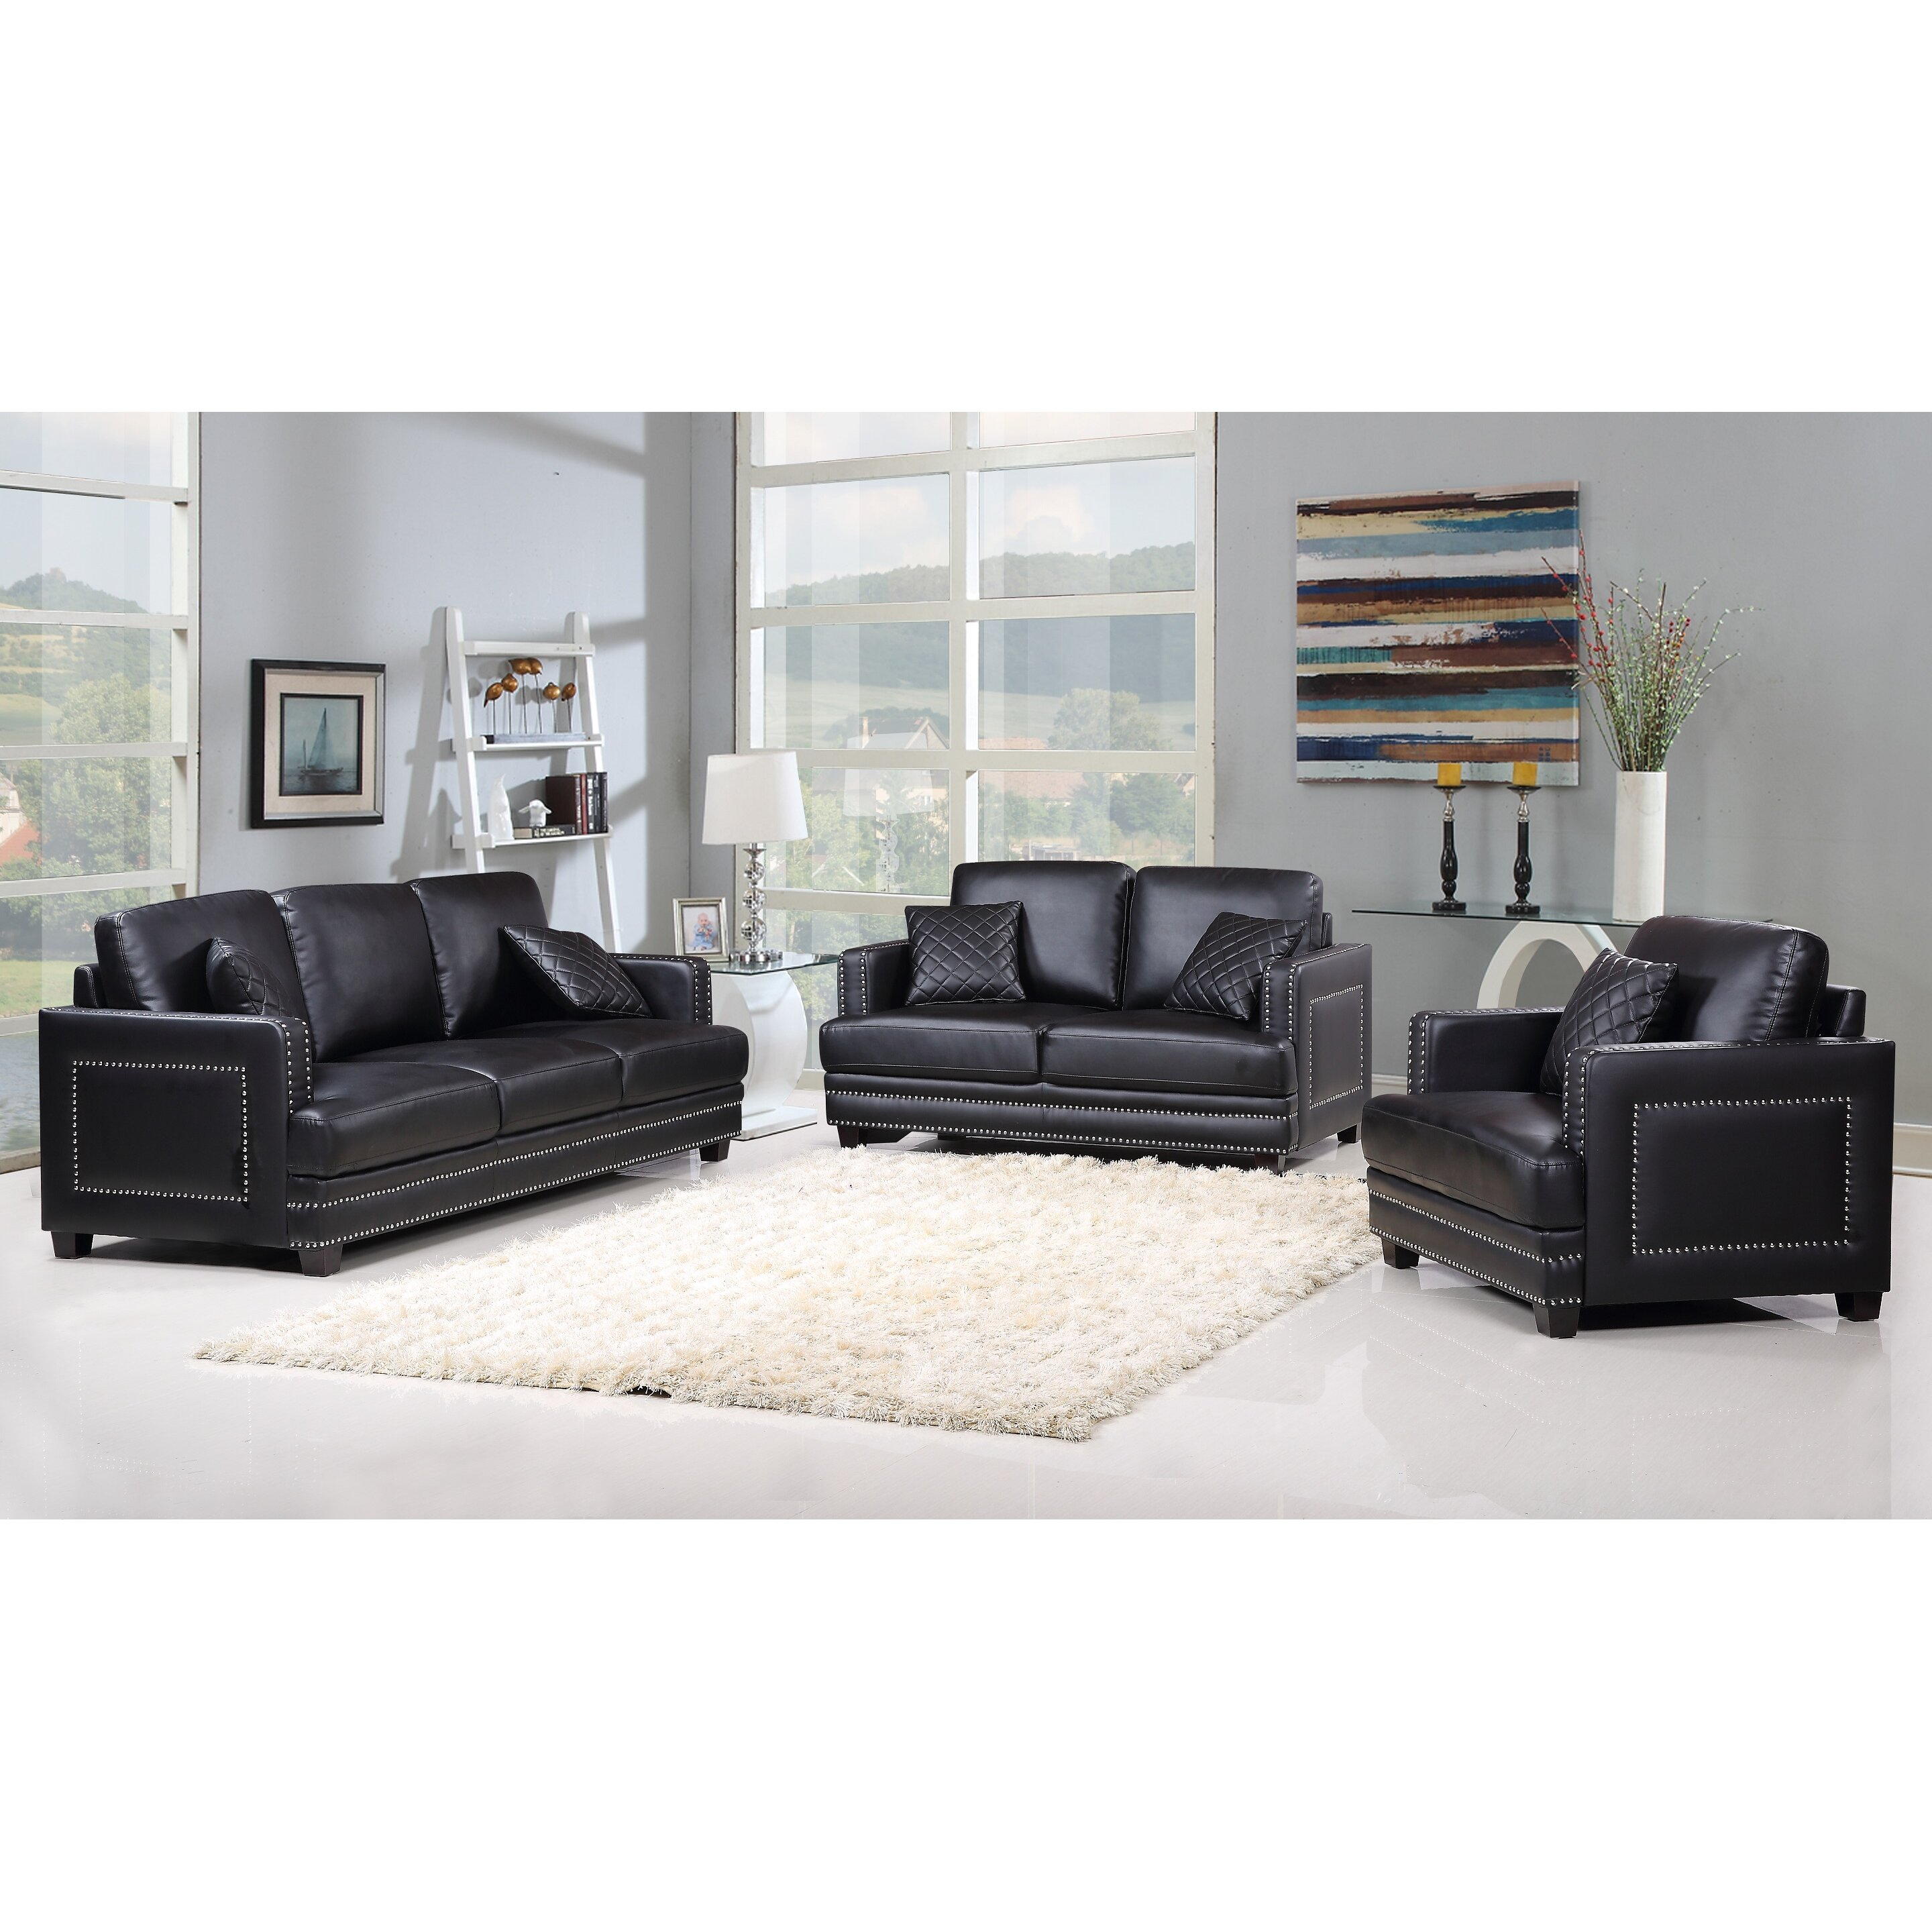 Meridian furniture usa ferrara nailhead sofa reviews for J furniture usa reviews